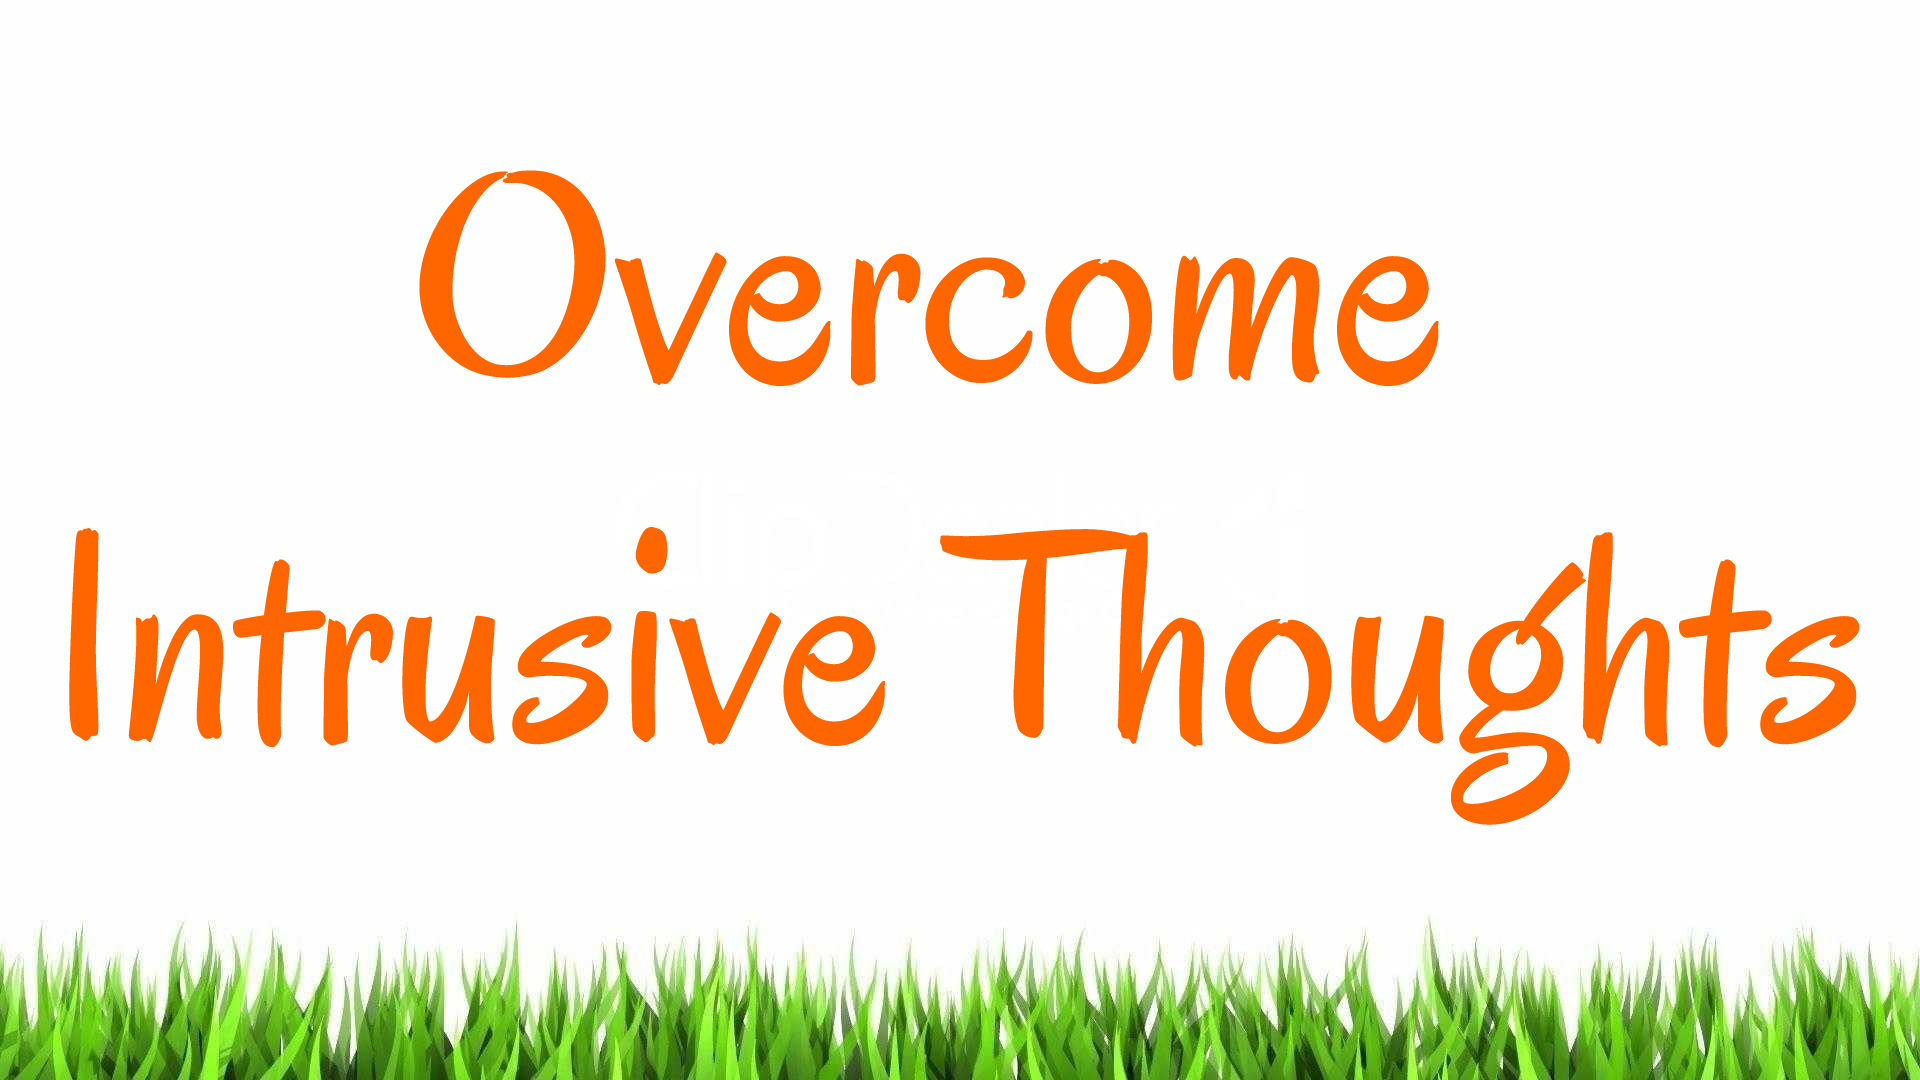 Challenge Intrusive Thoughts